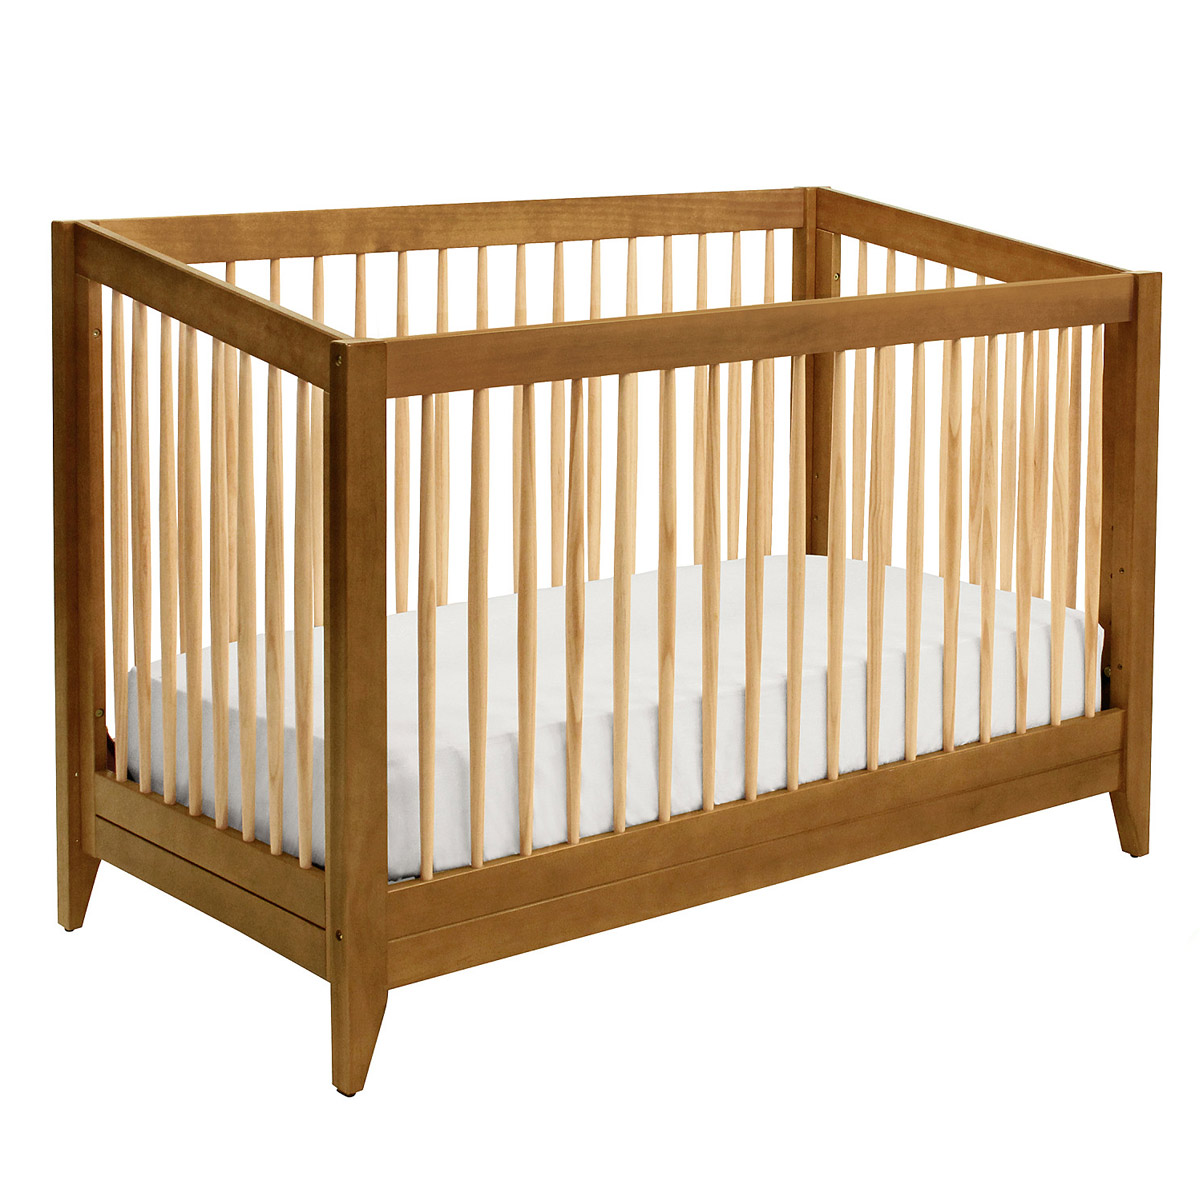 Best baby cribs for apartments - Davinci Highland Crib In Chestnut Ships Free At Simply Baby Furniture